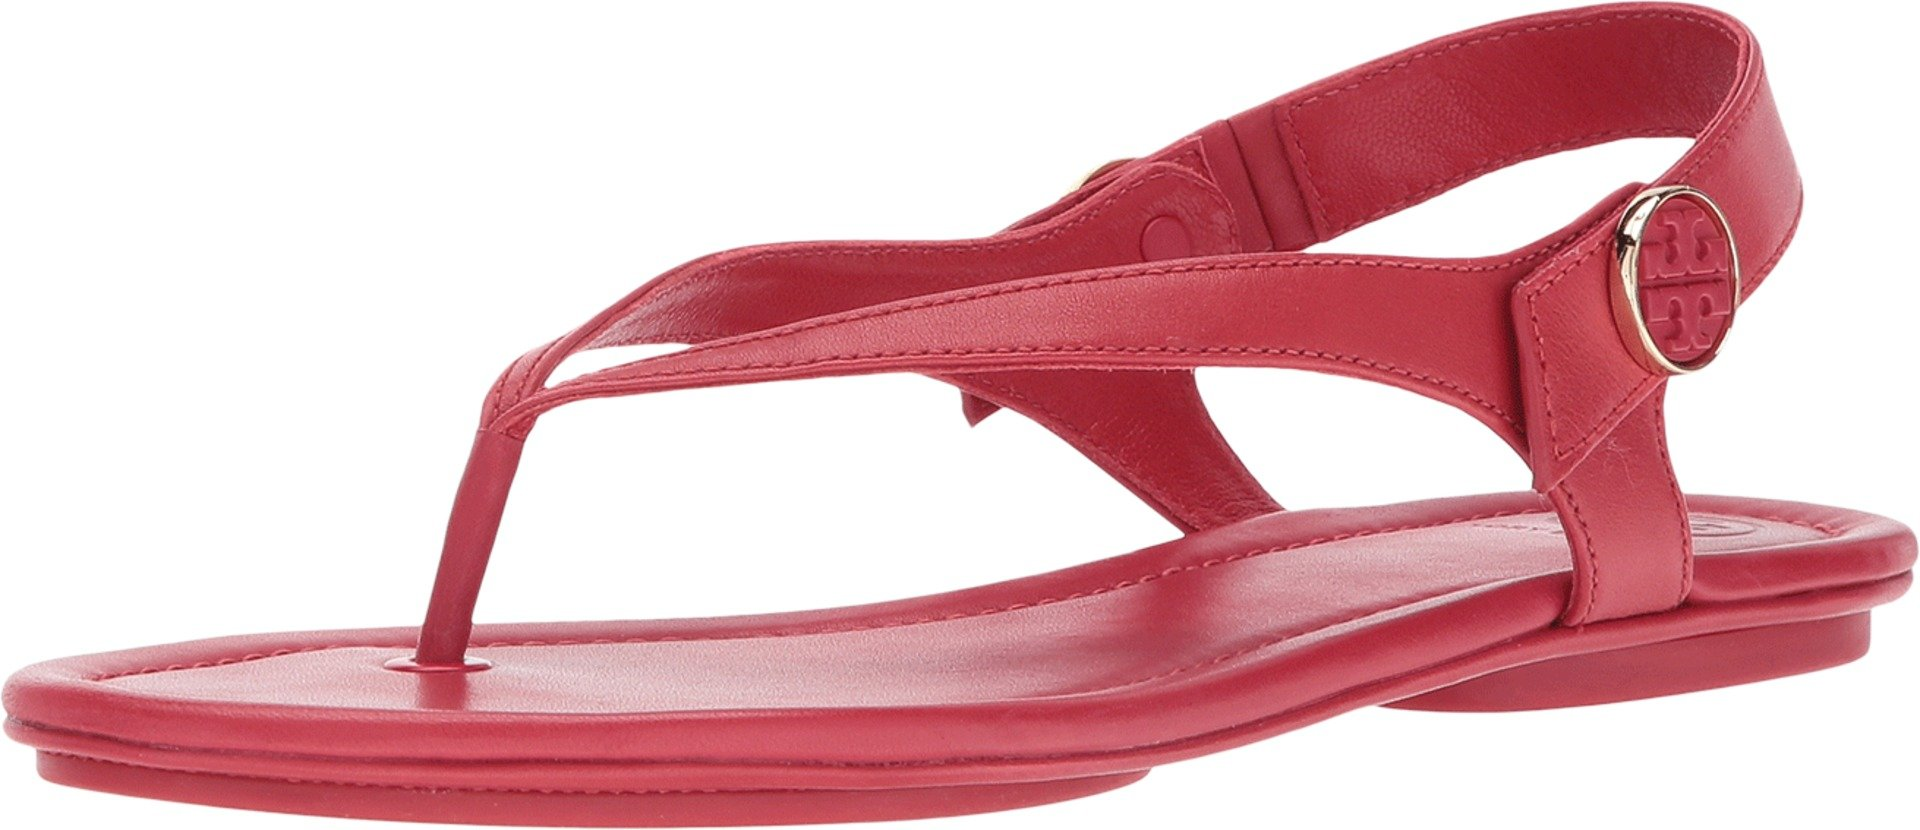 Tory Burch Minnie Leather Travel Sandal (10 M US')